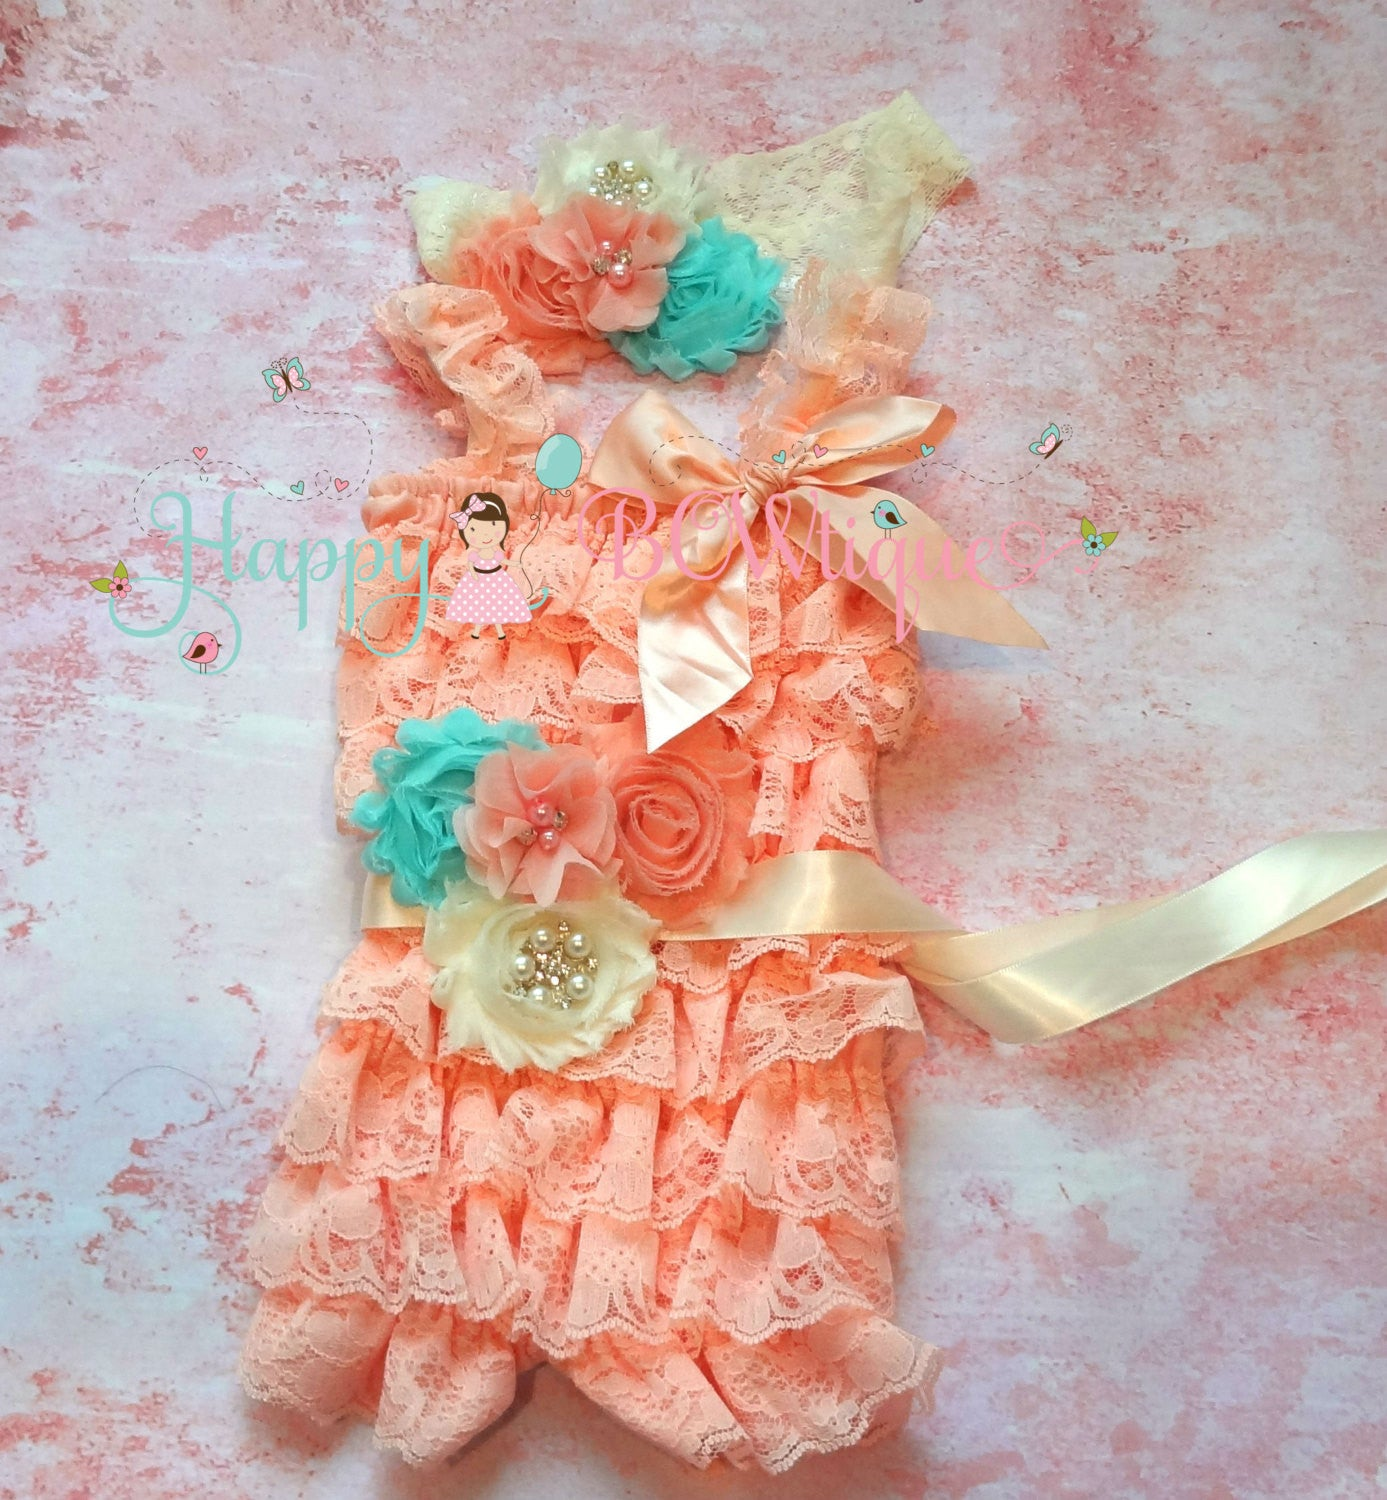 Ivory Blush Peach Aqua Lace Romper set - Happy BOWtique - children's clothing, Baby Girl clothing